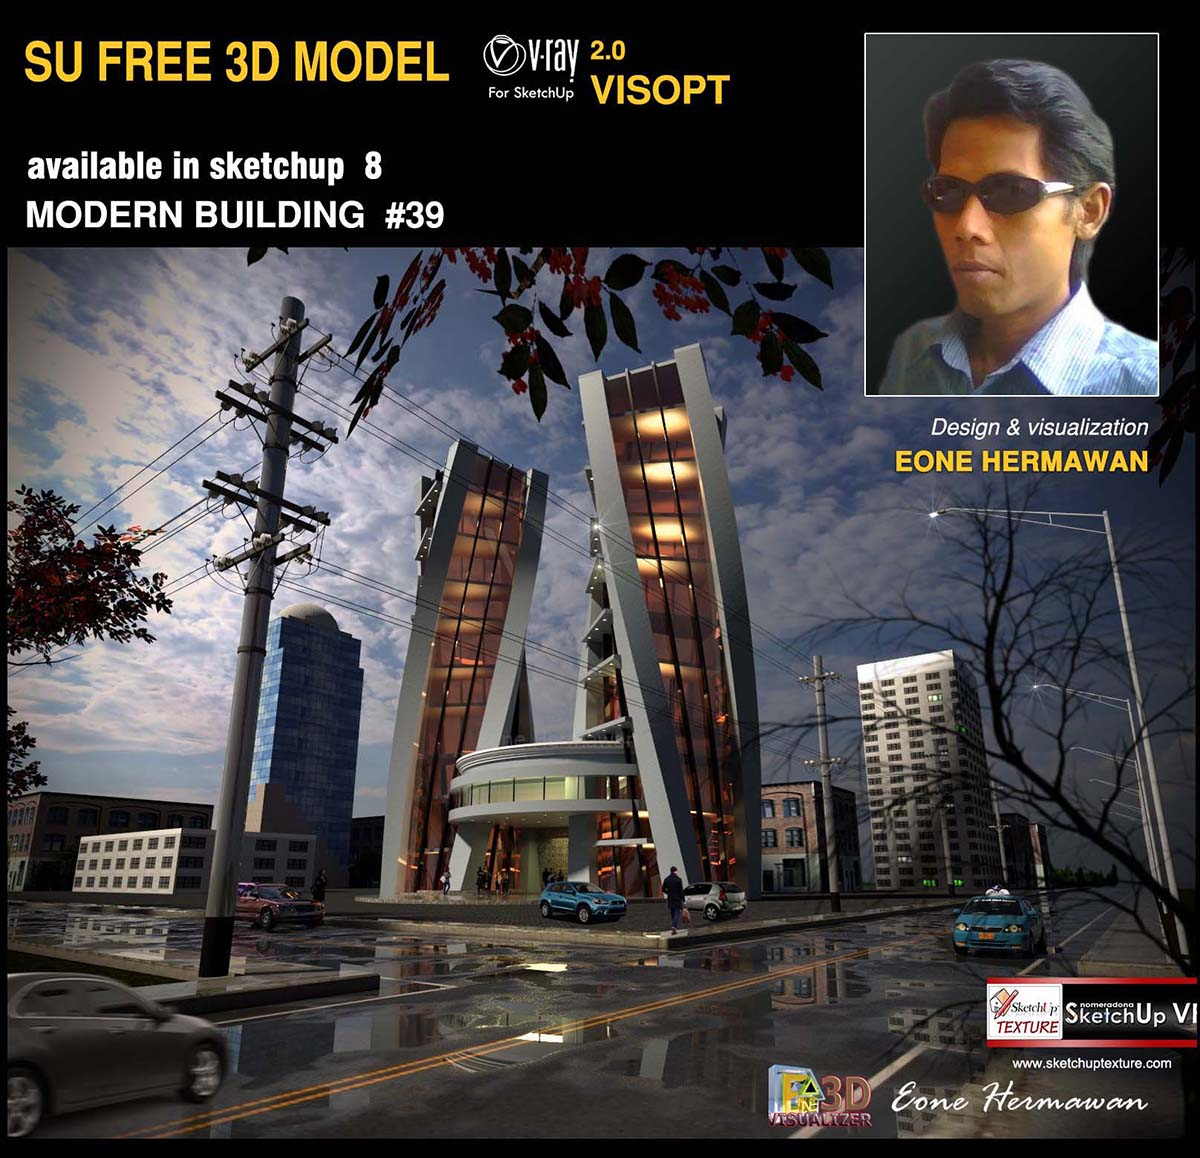 sketchup 3d model modern building 39 by Eone Hernawan cover